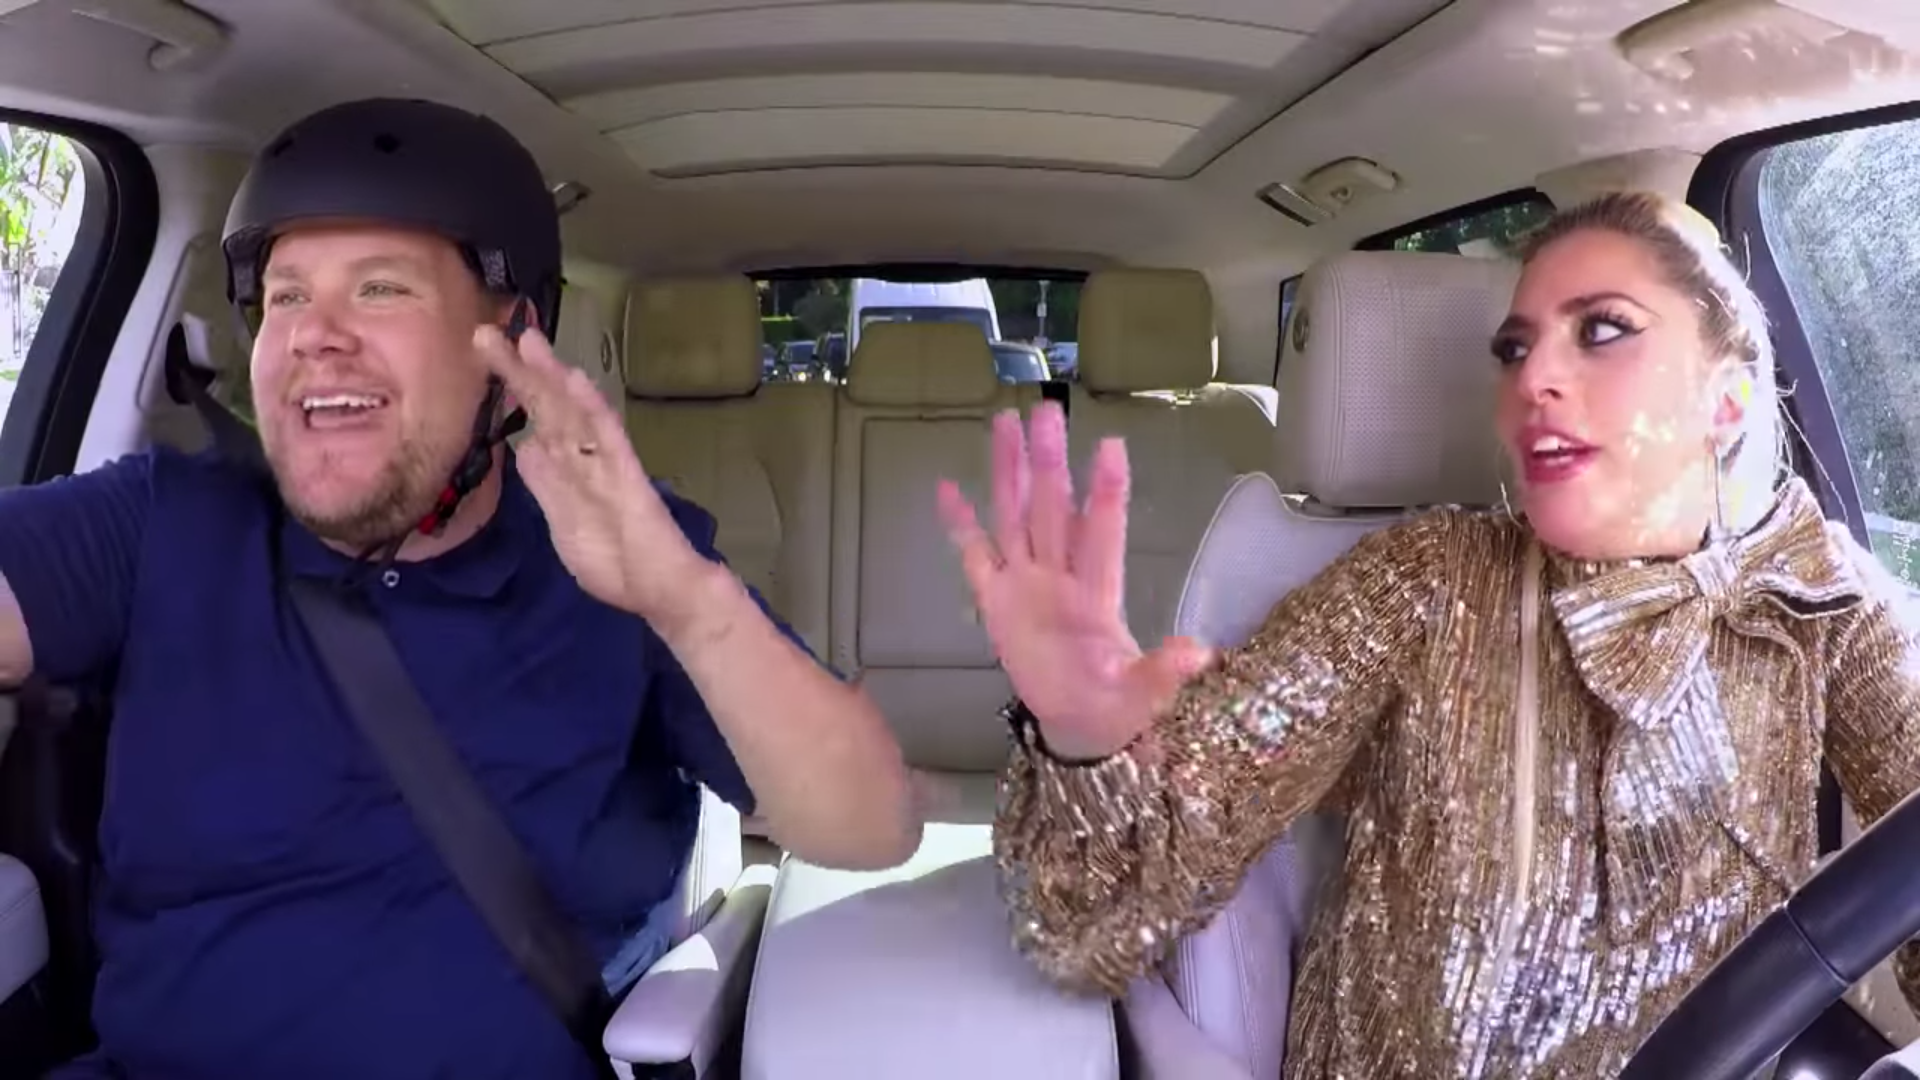 Lady Gaga drives and belts her greatest hits with James Corden on 'Carpool Karaoke'